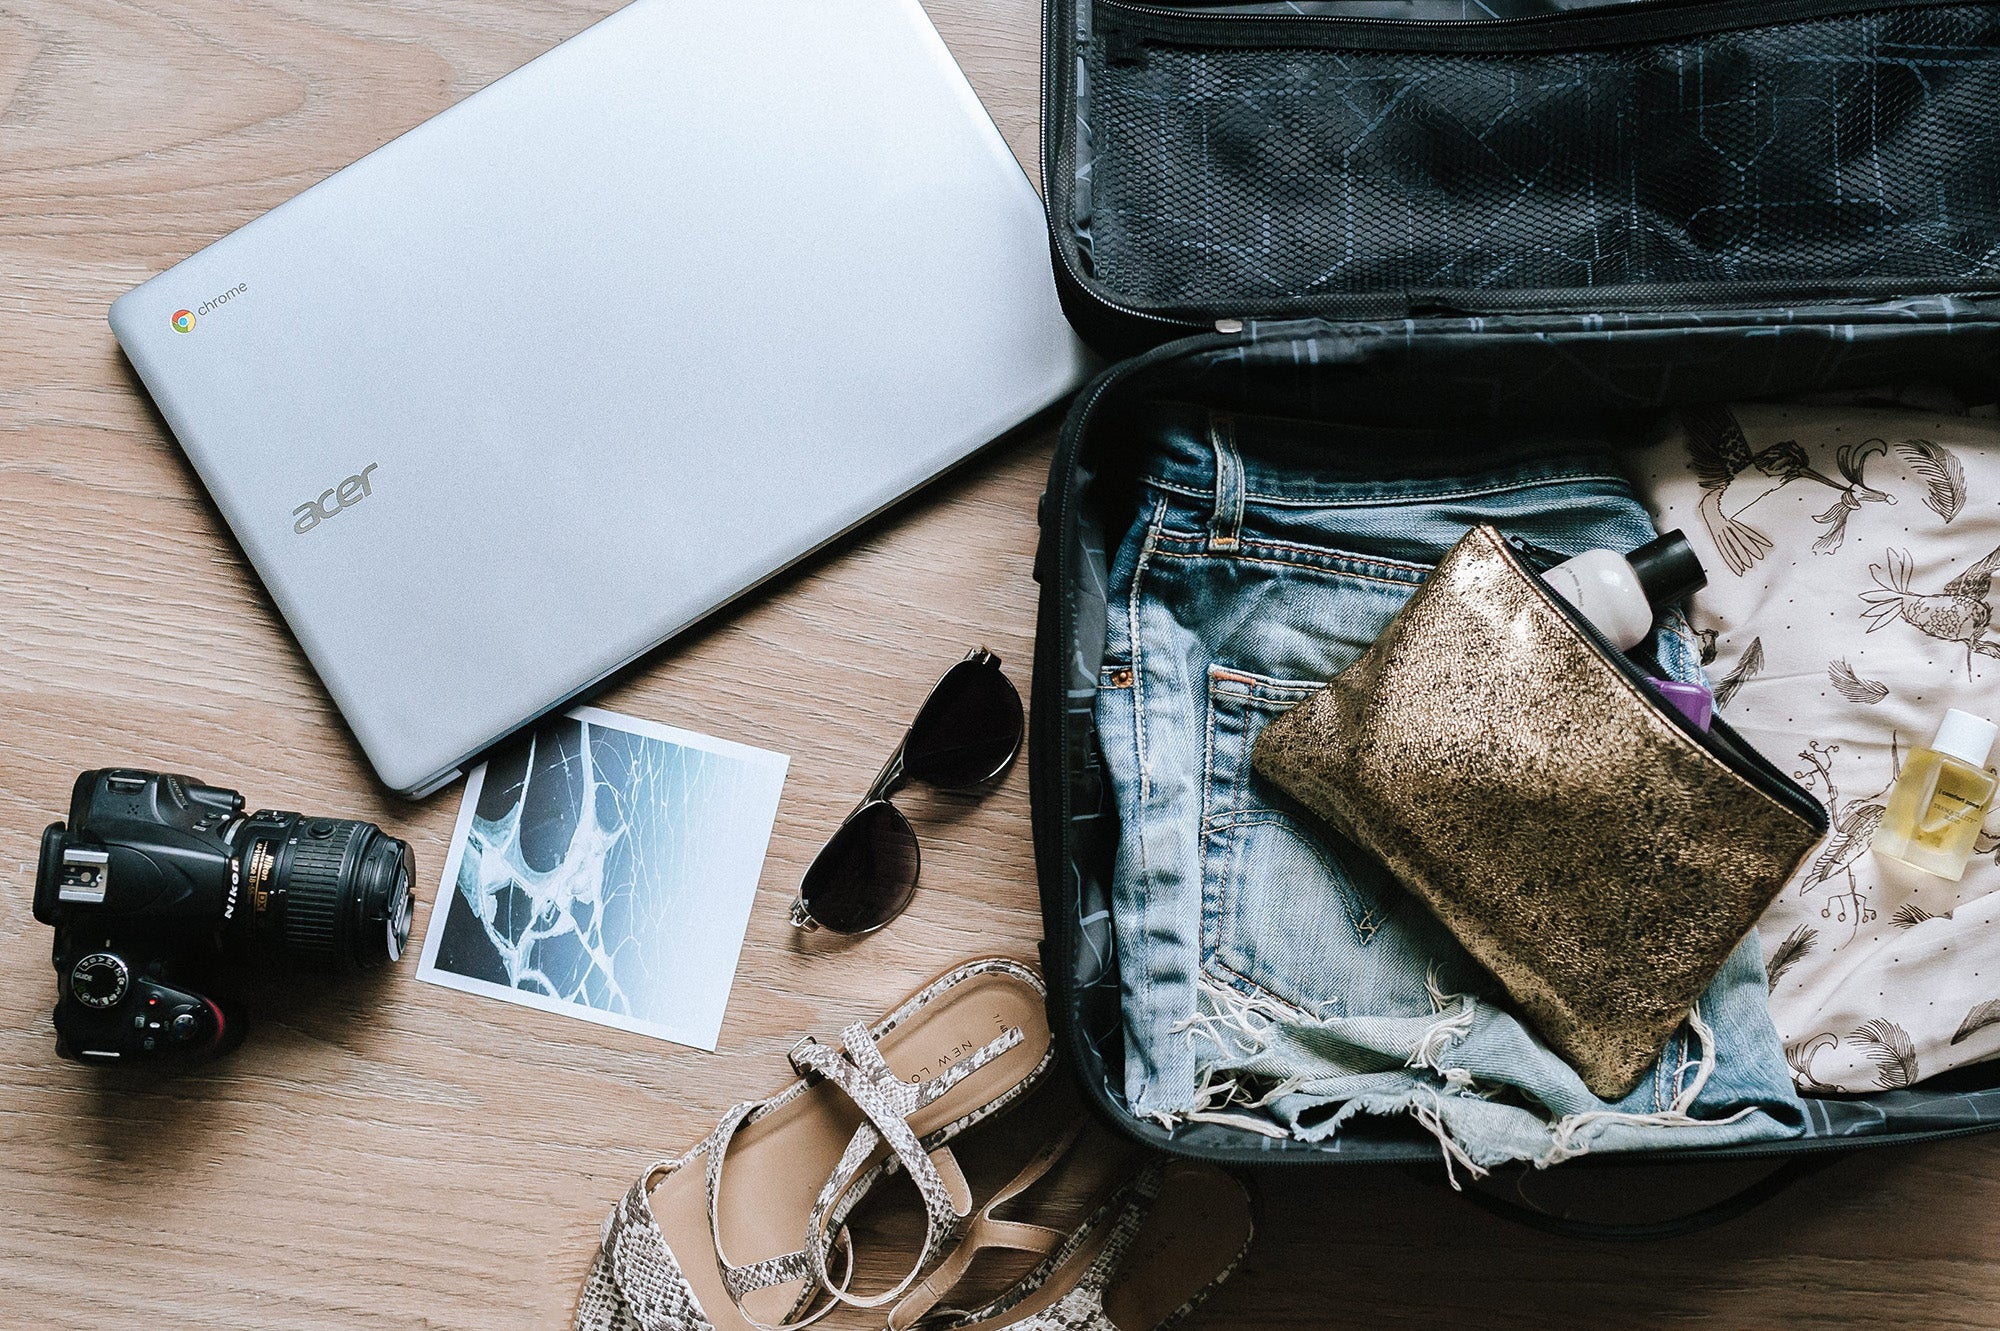 suitcase, laptop, sunglasses, camera, and other travel gear for the best gifts for travelers